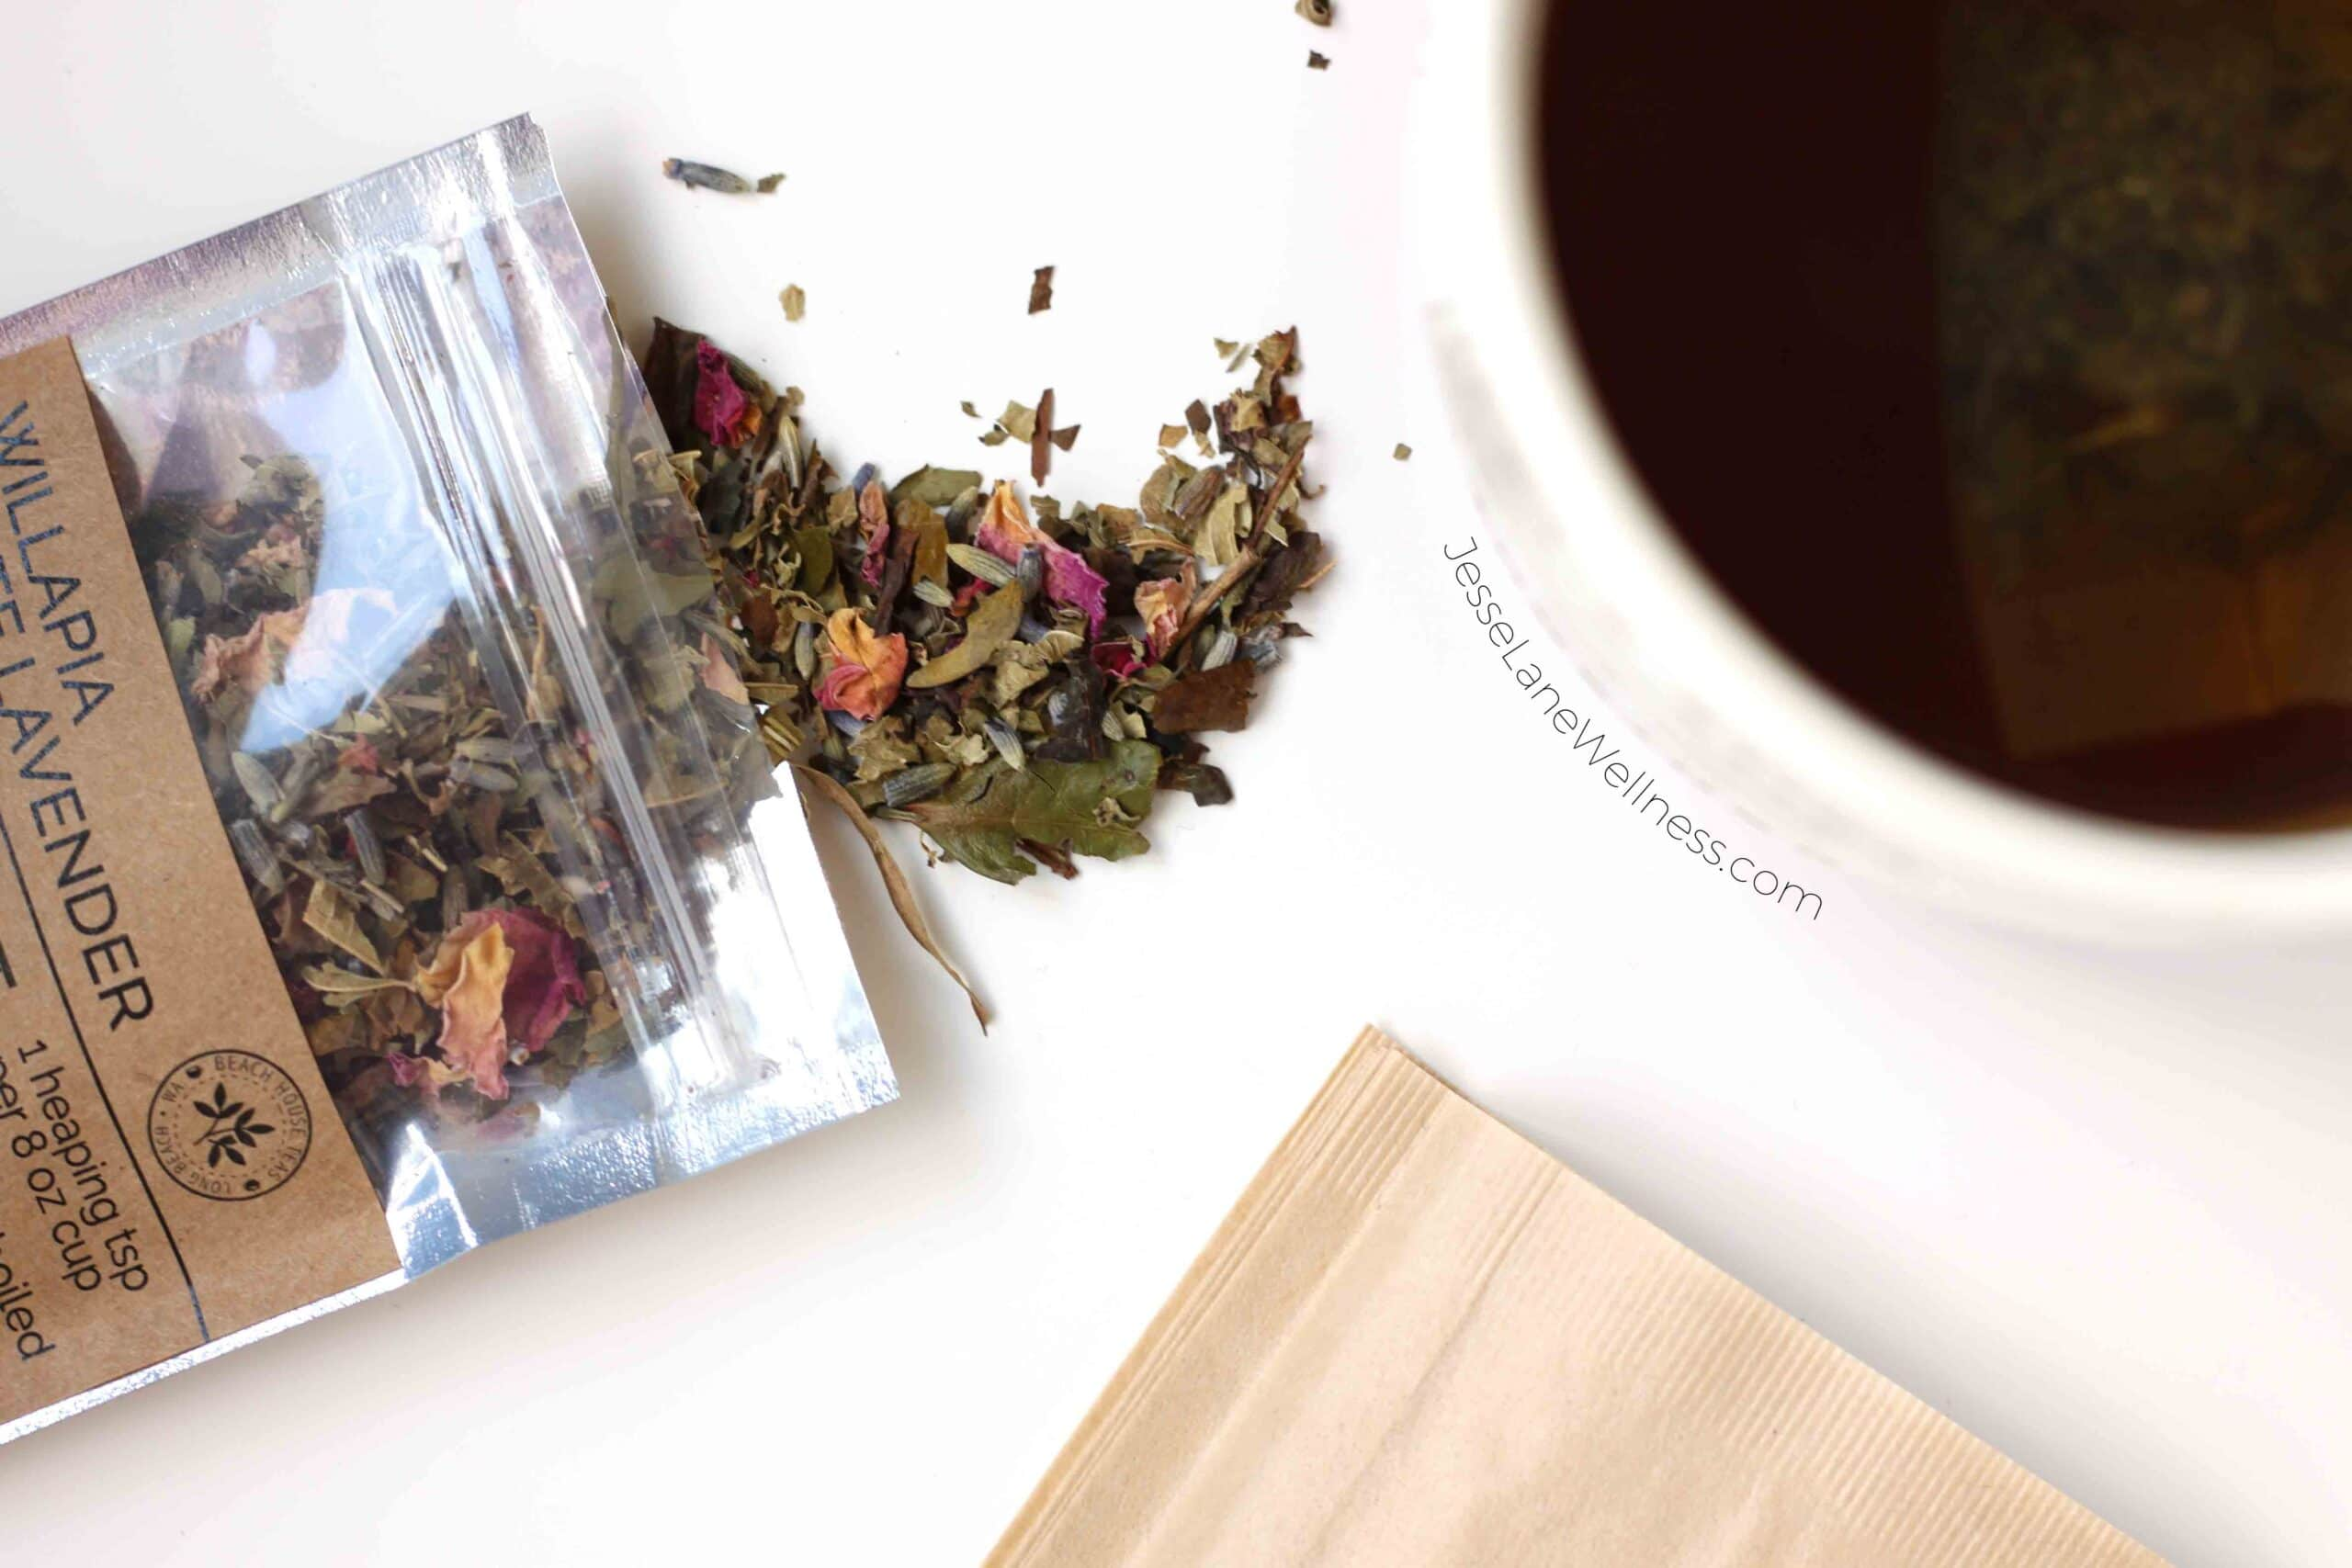 Amoda Monthly Tea Box Review with @jesselwellness #tealover #tea